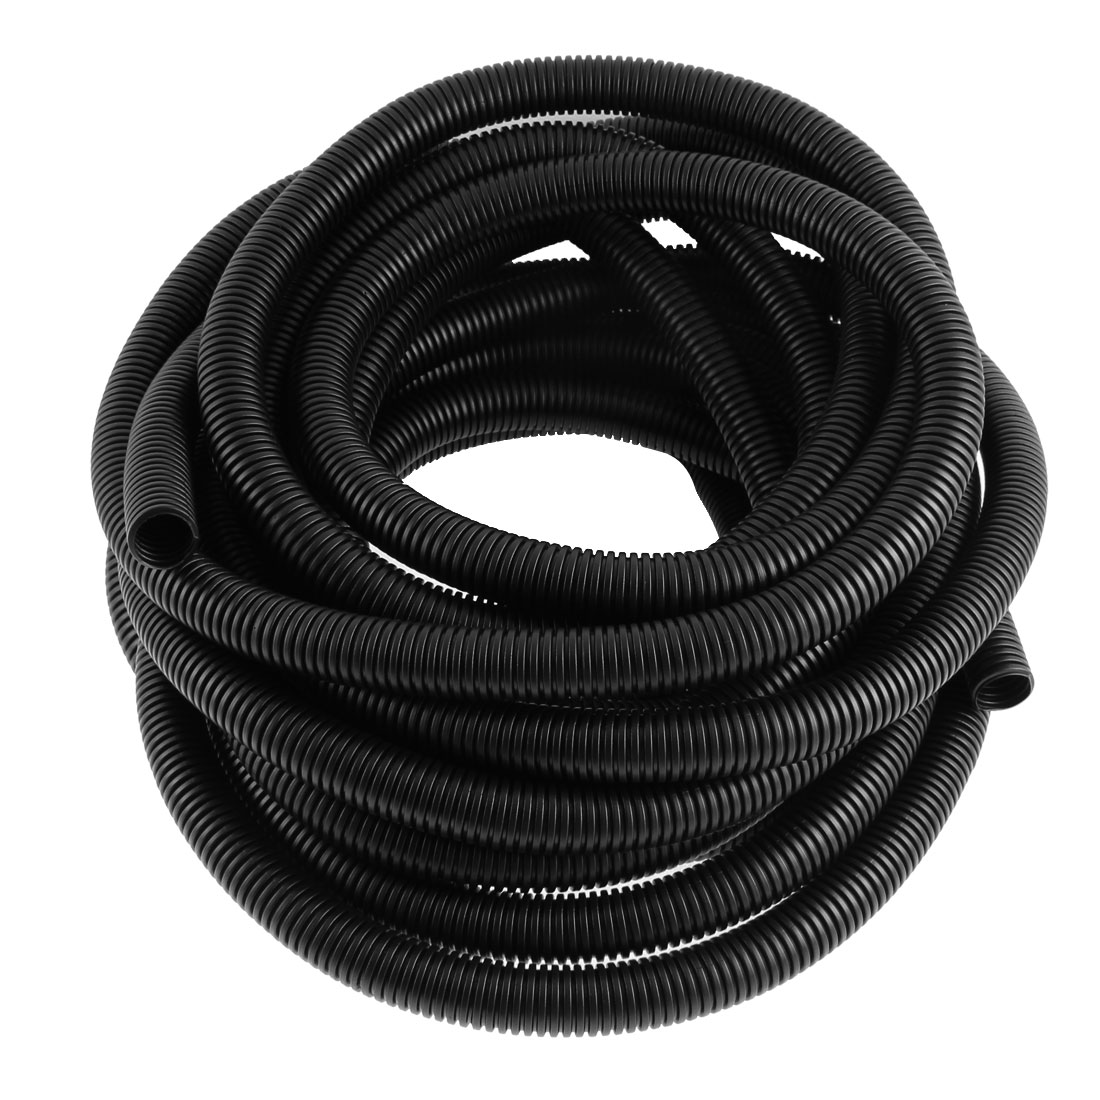 uxcell 2M Length 25mm Outside Dia Corrugated Bellow Conduit Tube for Electric Wiring